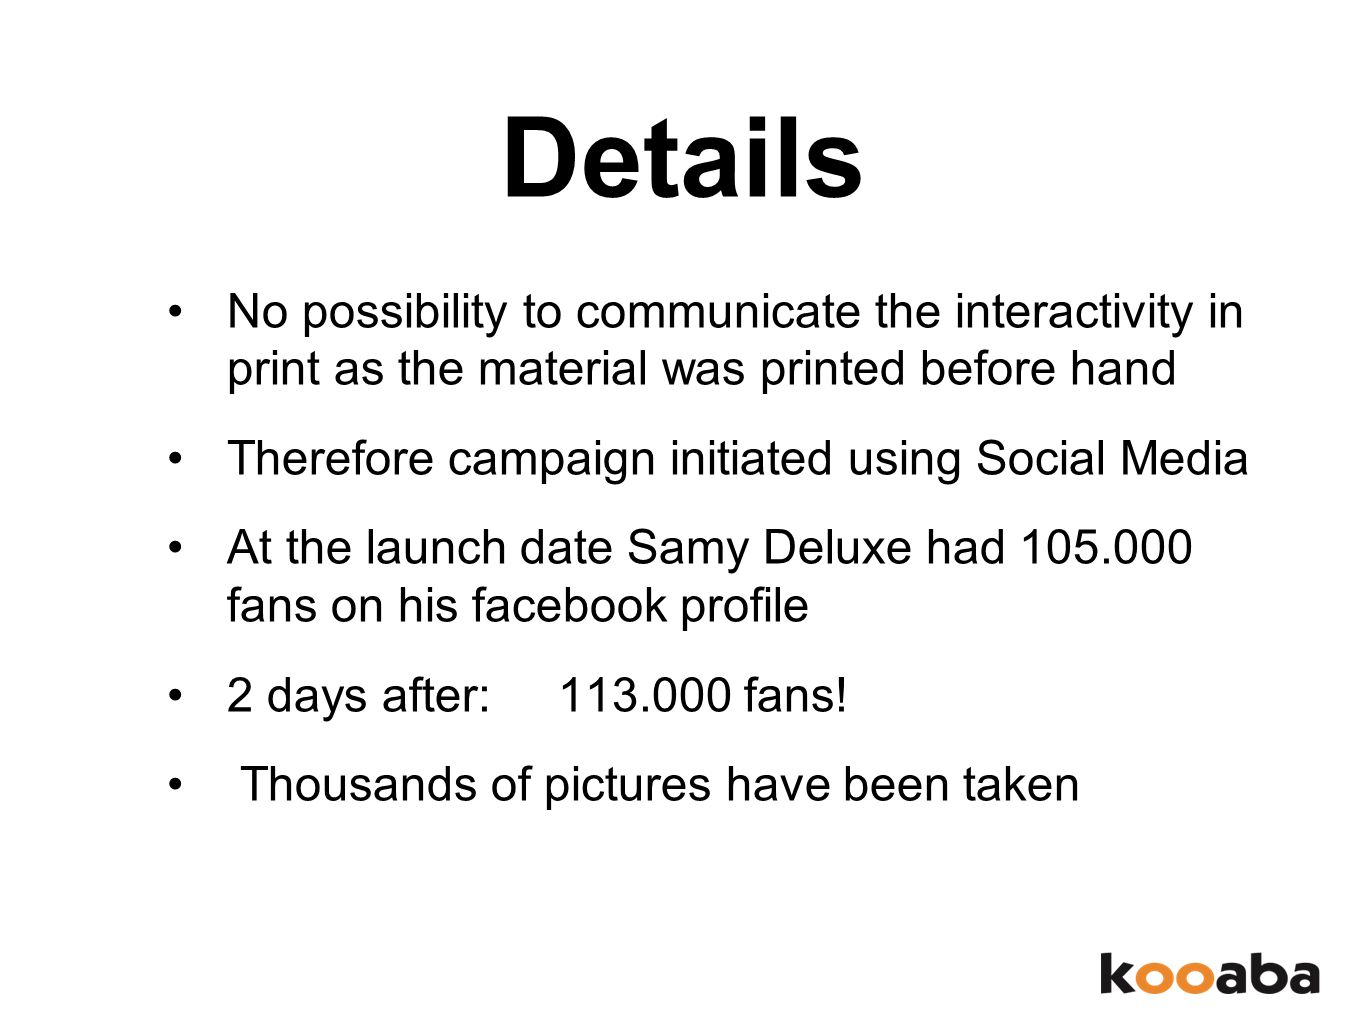 Details No possibility to communicate the interactivity in print as the material was printed before hand Therefore campaign initiated using Social Media At the launch date Samy Deluxe had 105.000 fans on his facebook profile 2 days after: 113.000 fans.